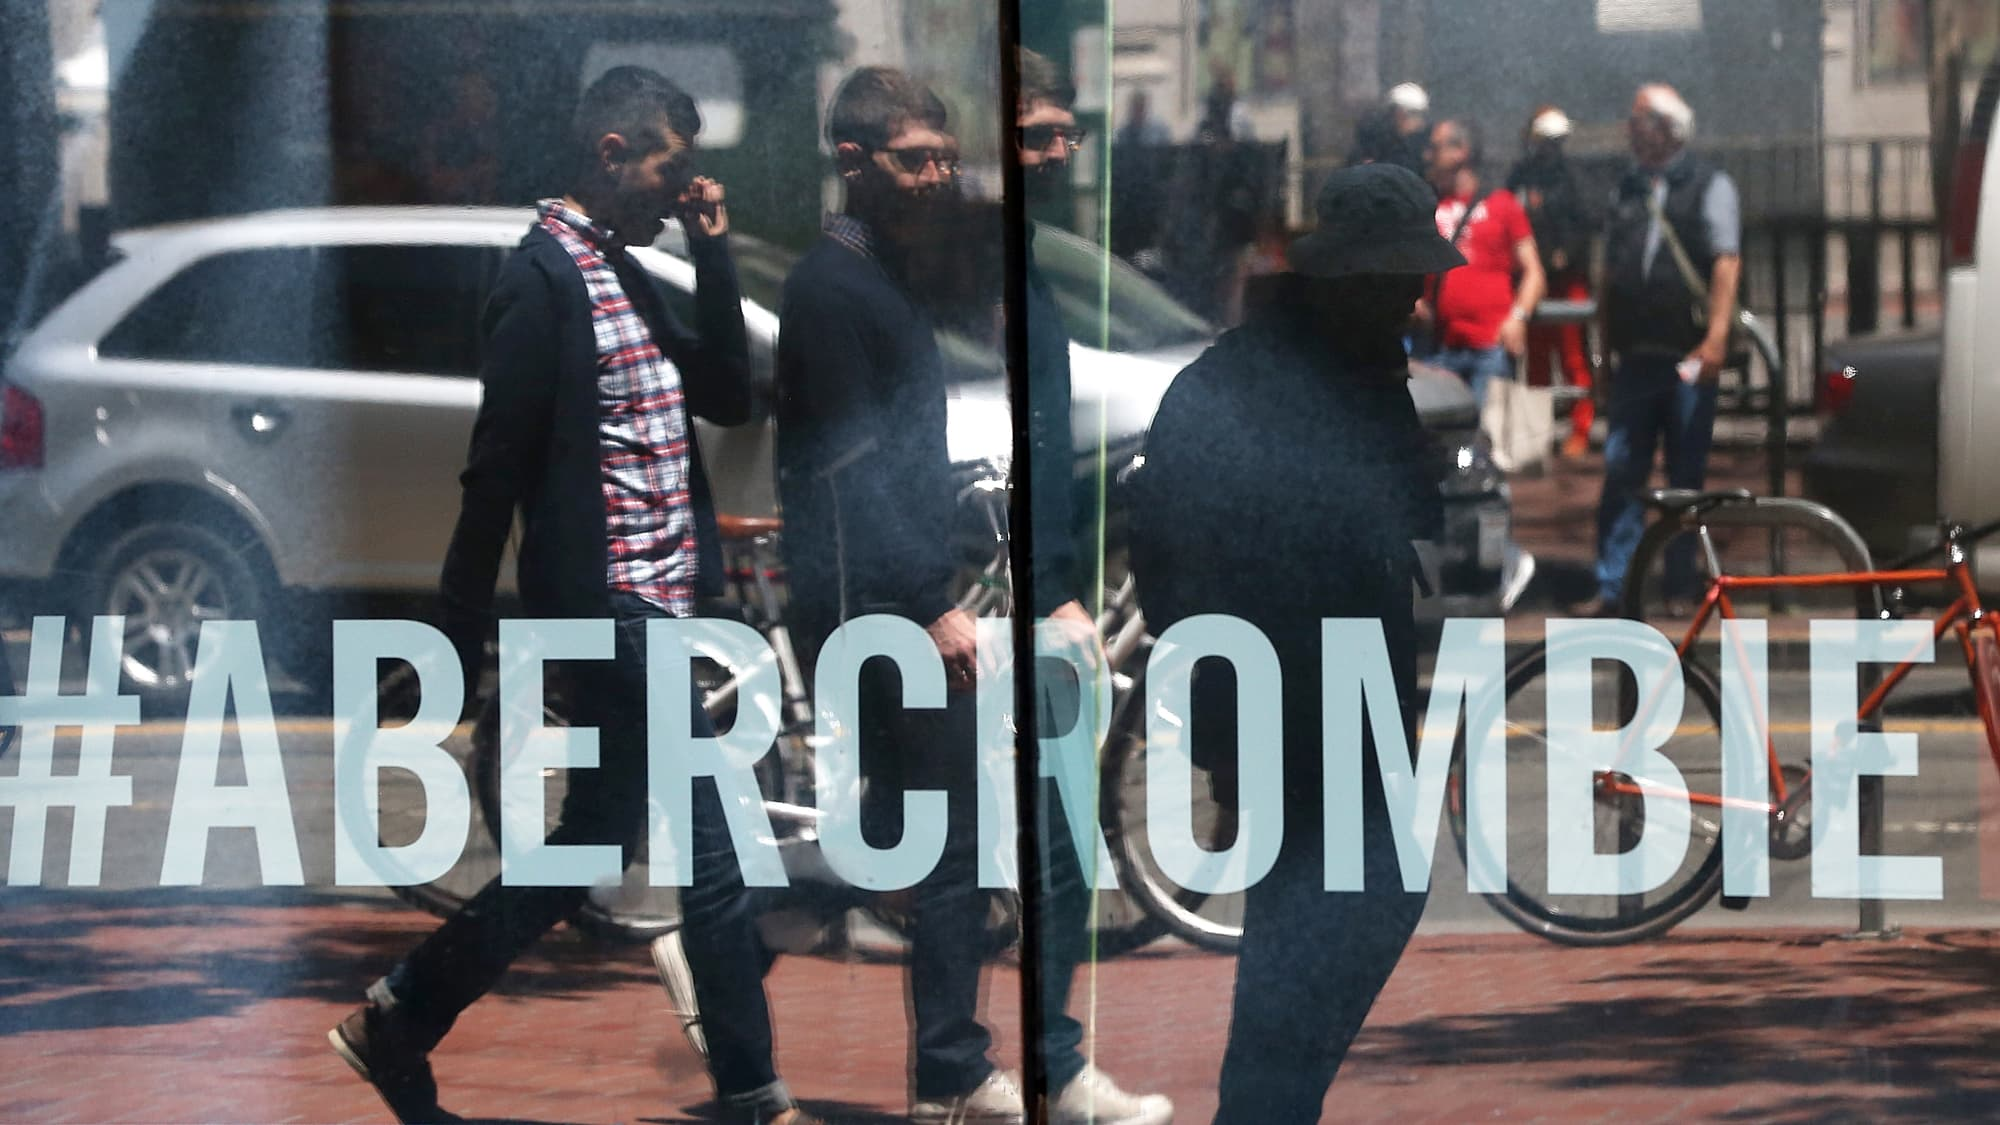 Reusable: Abercrombie & Fitch store with reflections of people